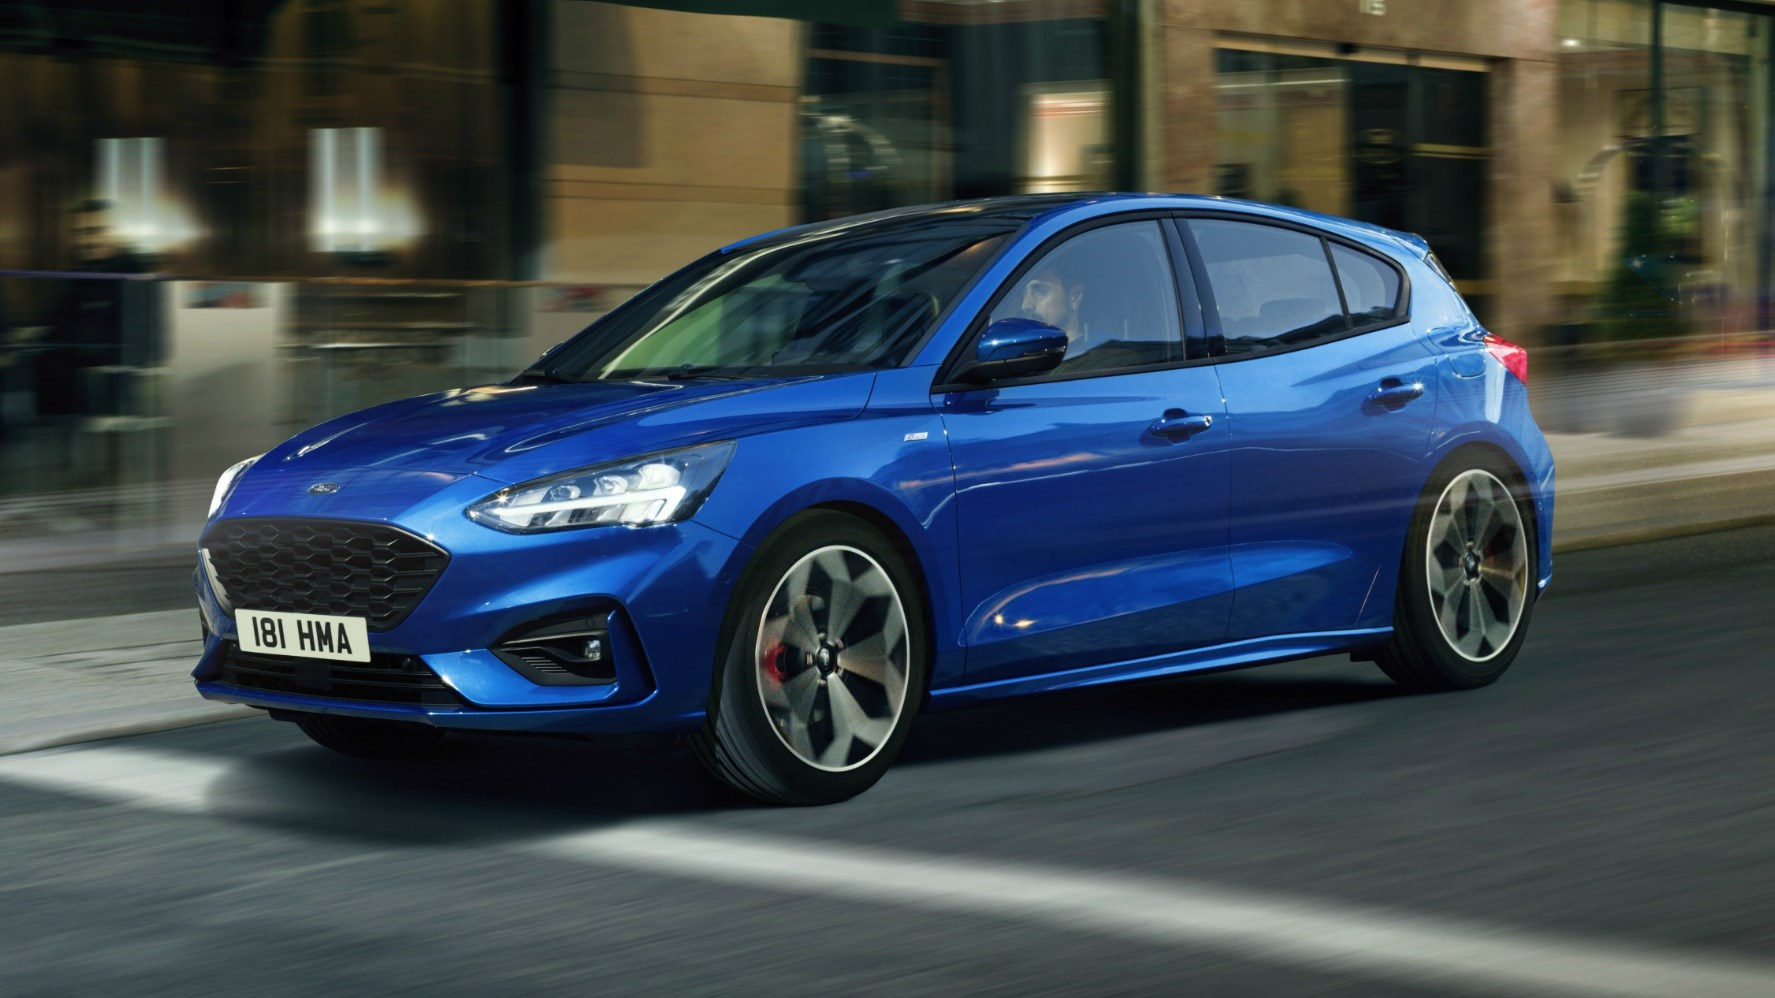 Ford's All-New Focus Revealed, Big Changes Afoot For MK4 Thumbnail